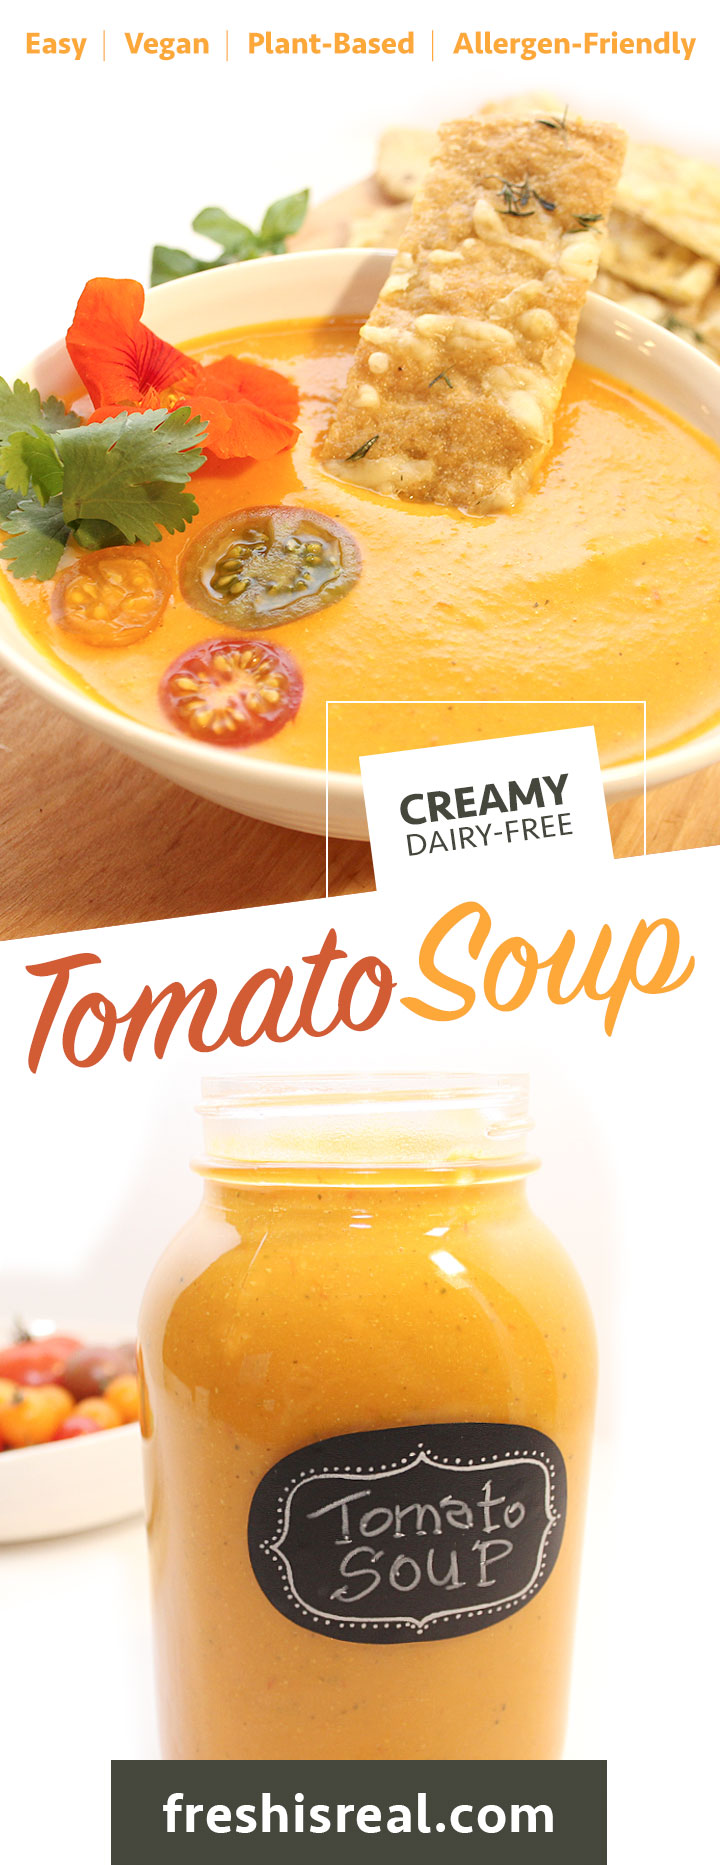 This delicious Easy Dairy-Free Vegan Creamy Tomato Soup is rich, flavourful, and simple to make. Tested and approved by kids, completely allergen-friendly - freshisreal.com